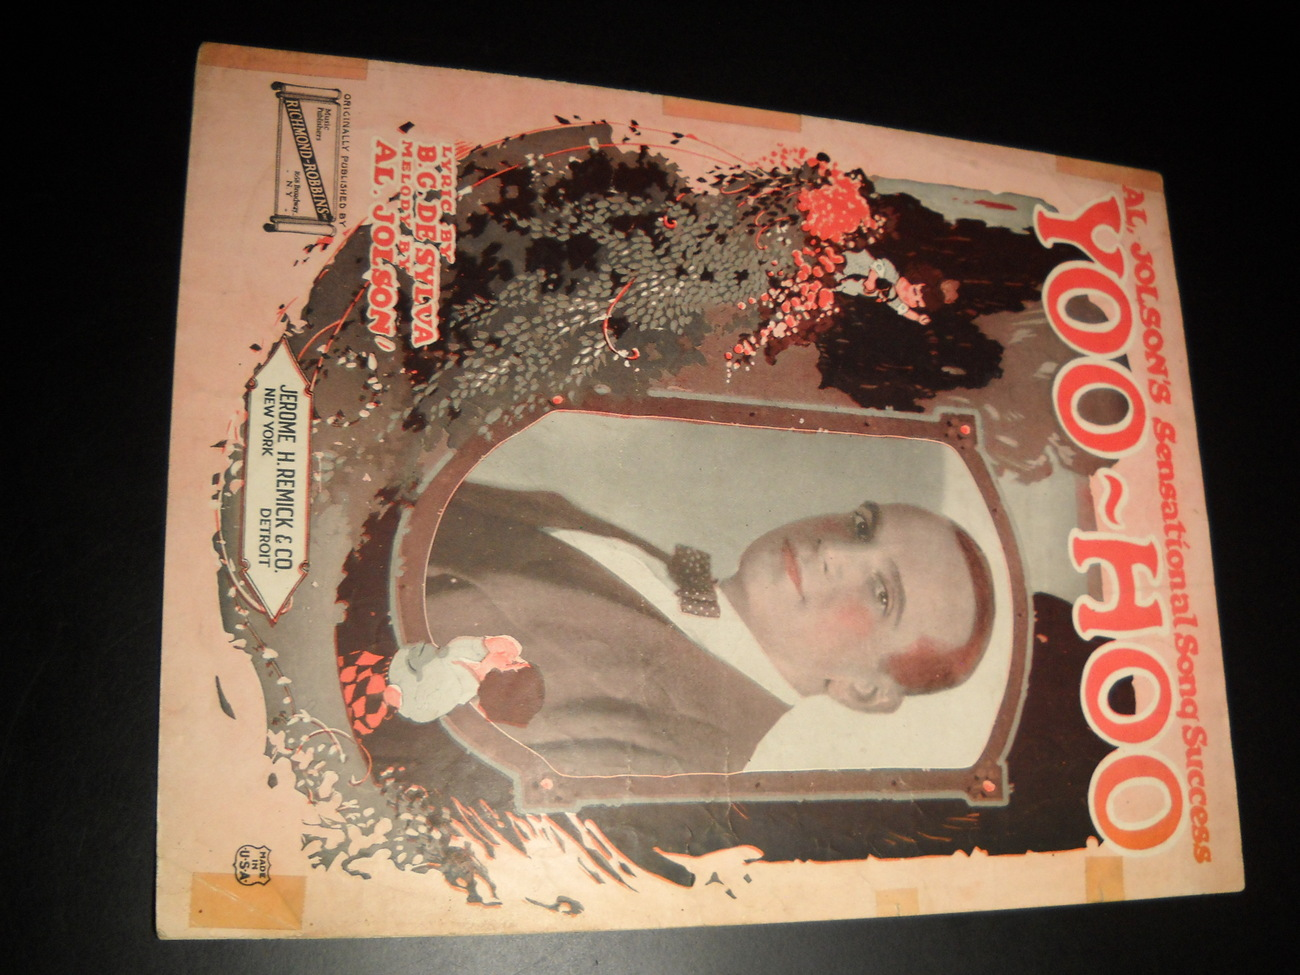 Sheet Music Yoo Hoo Al Jolson De Sylva Richmond Robbins 1921 Jerome Remick Music